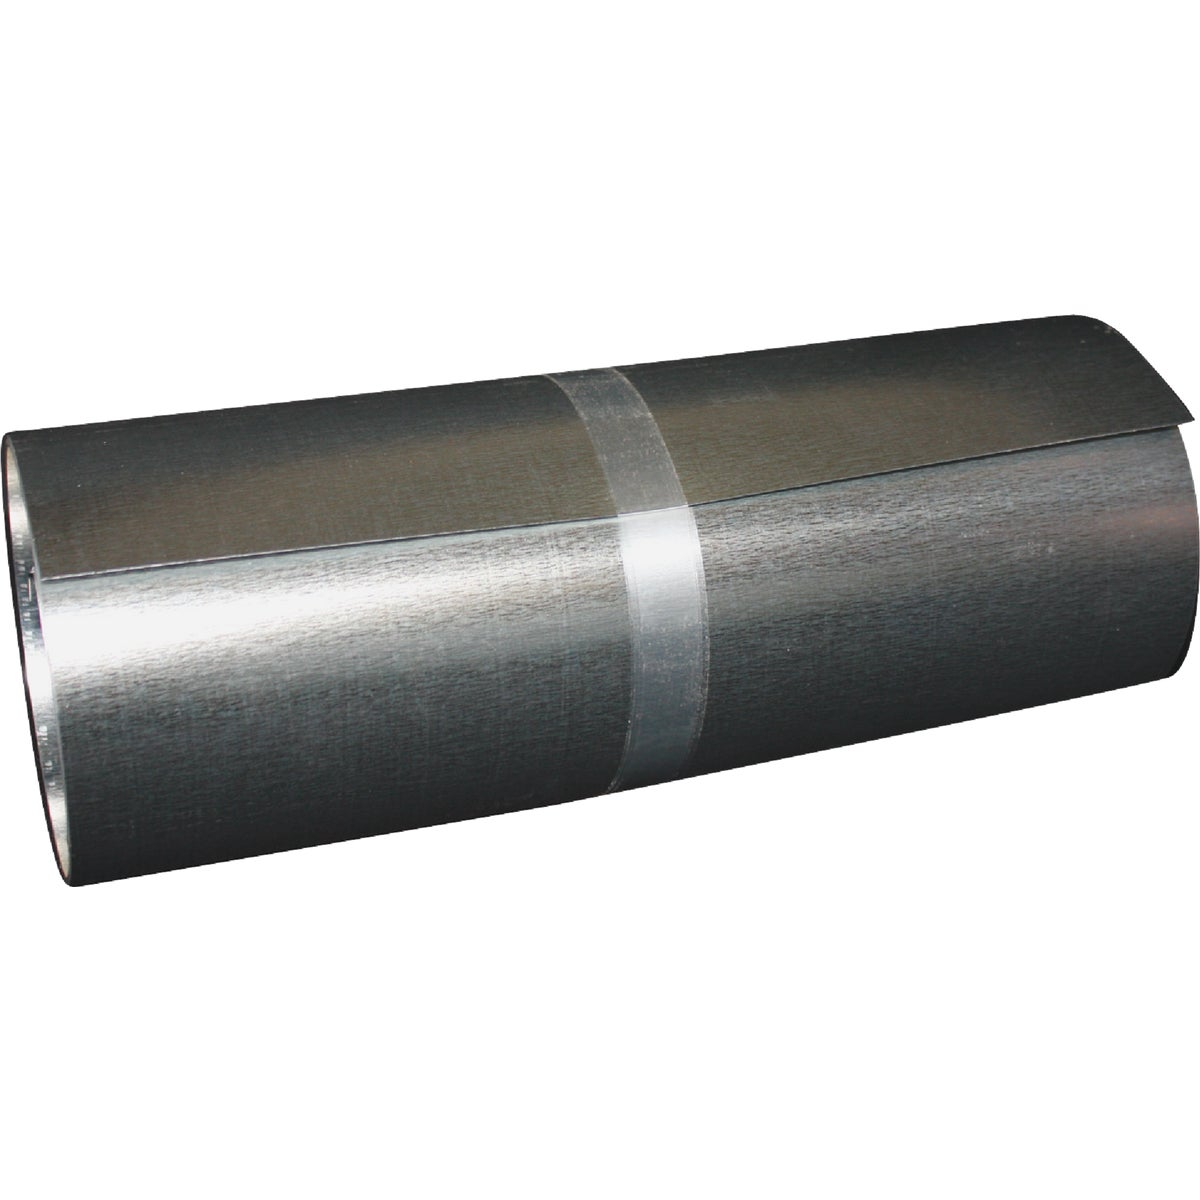 "14""X50' GALV ROLL VALLEY - 30050-GV10 by Klauer Mfg Co"